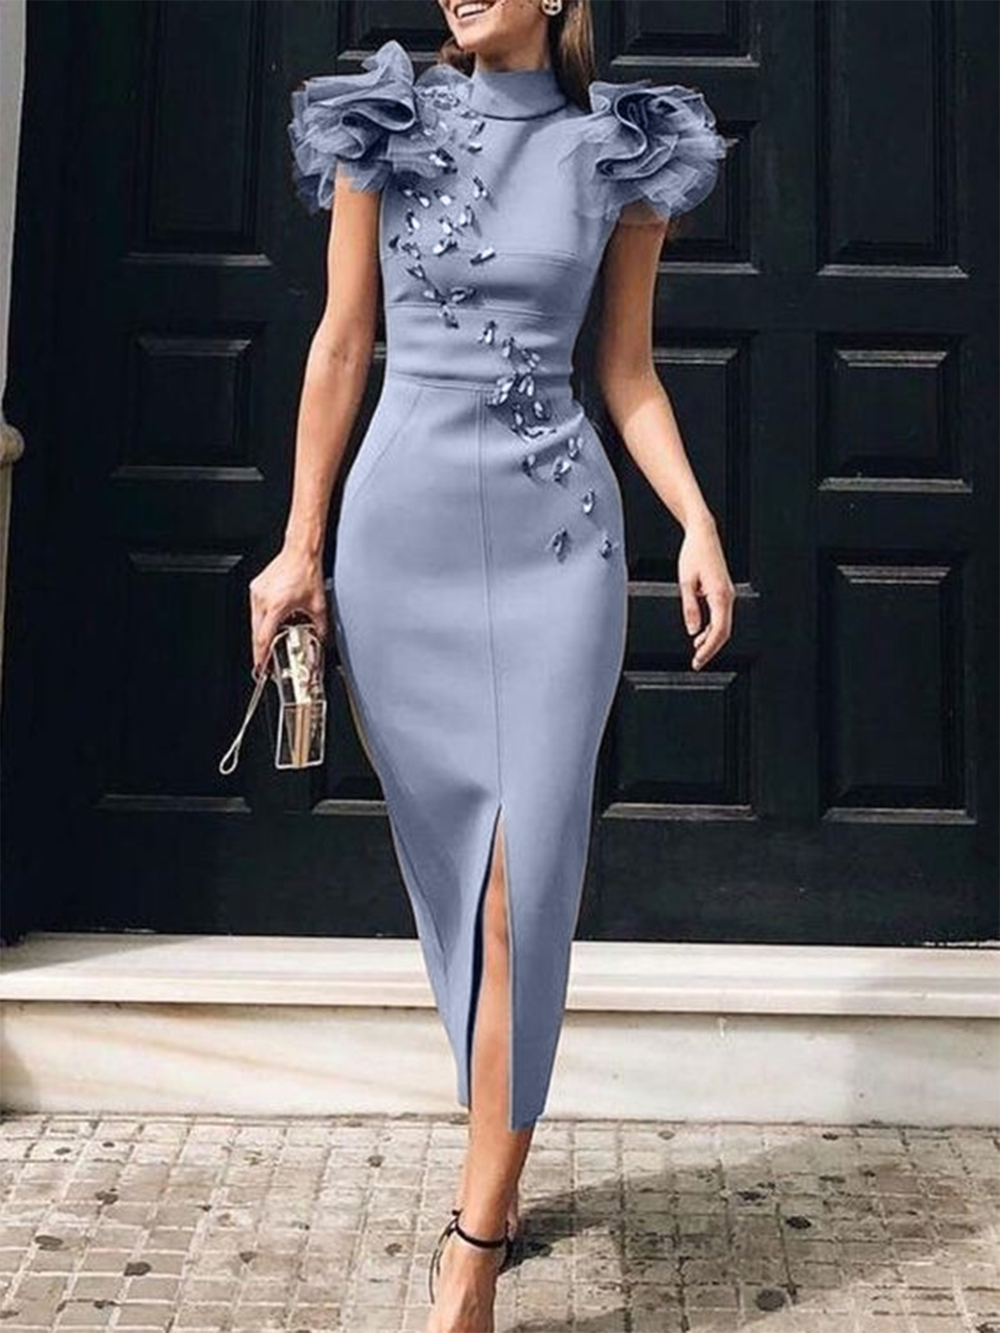 Buy Party Dresses Elegant Dresses For Women from 6 at Chicdore